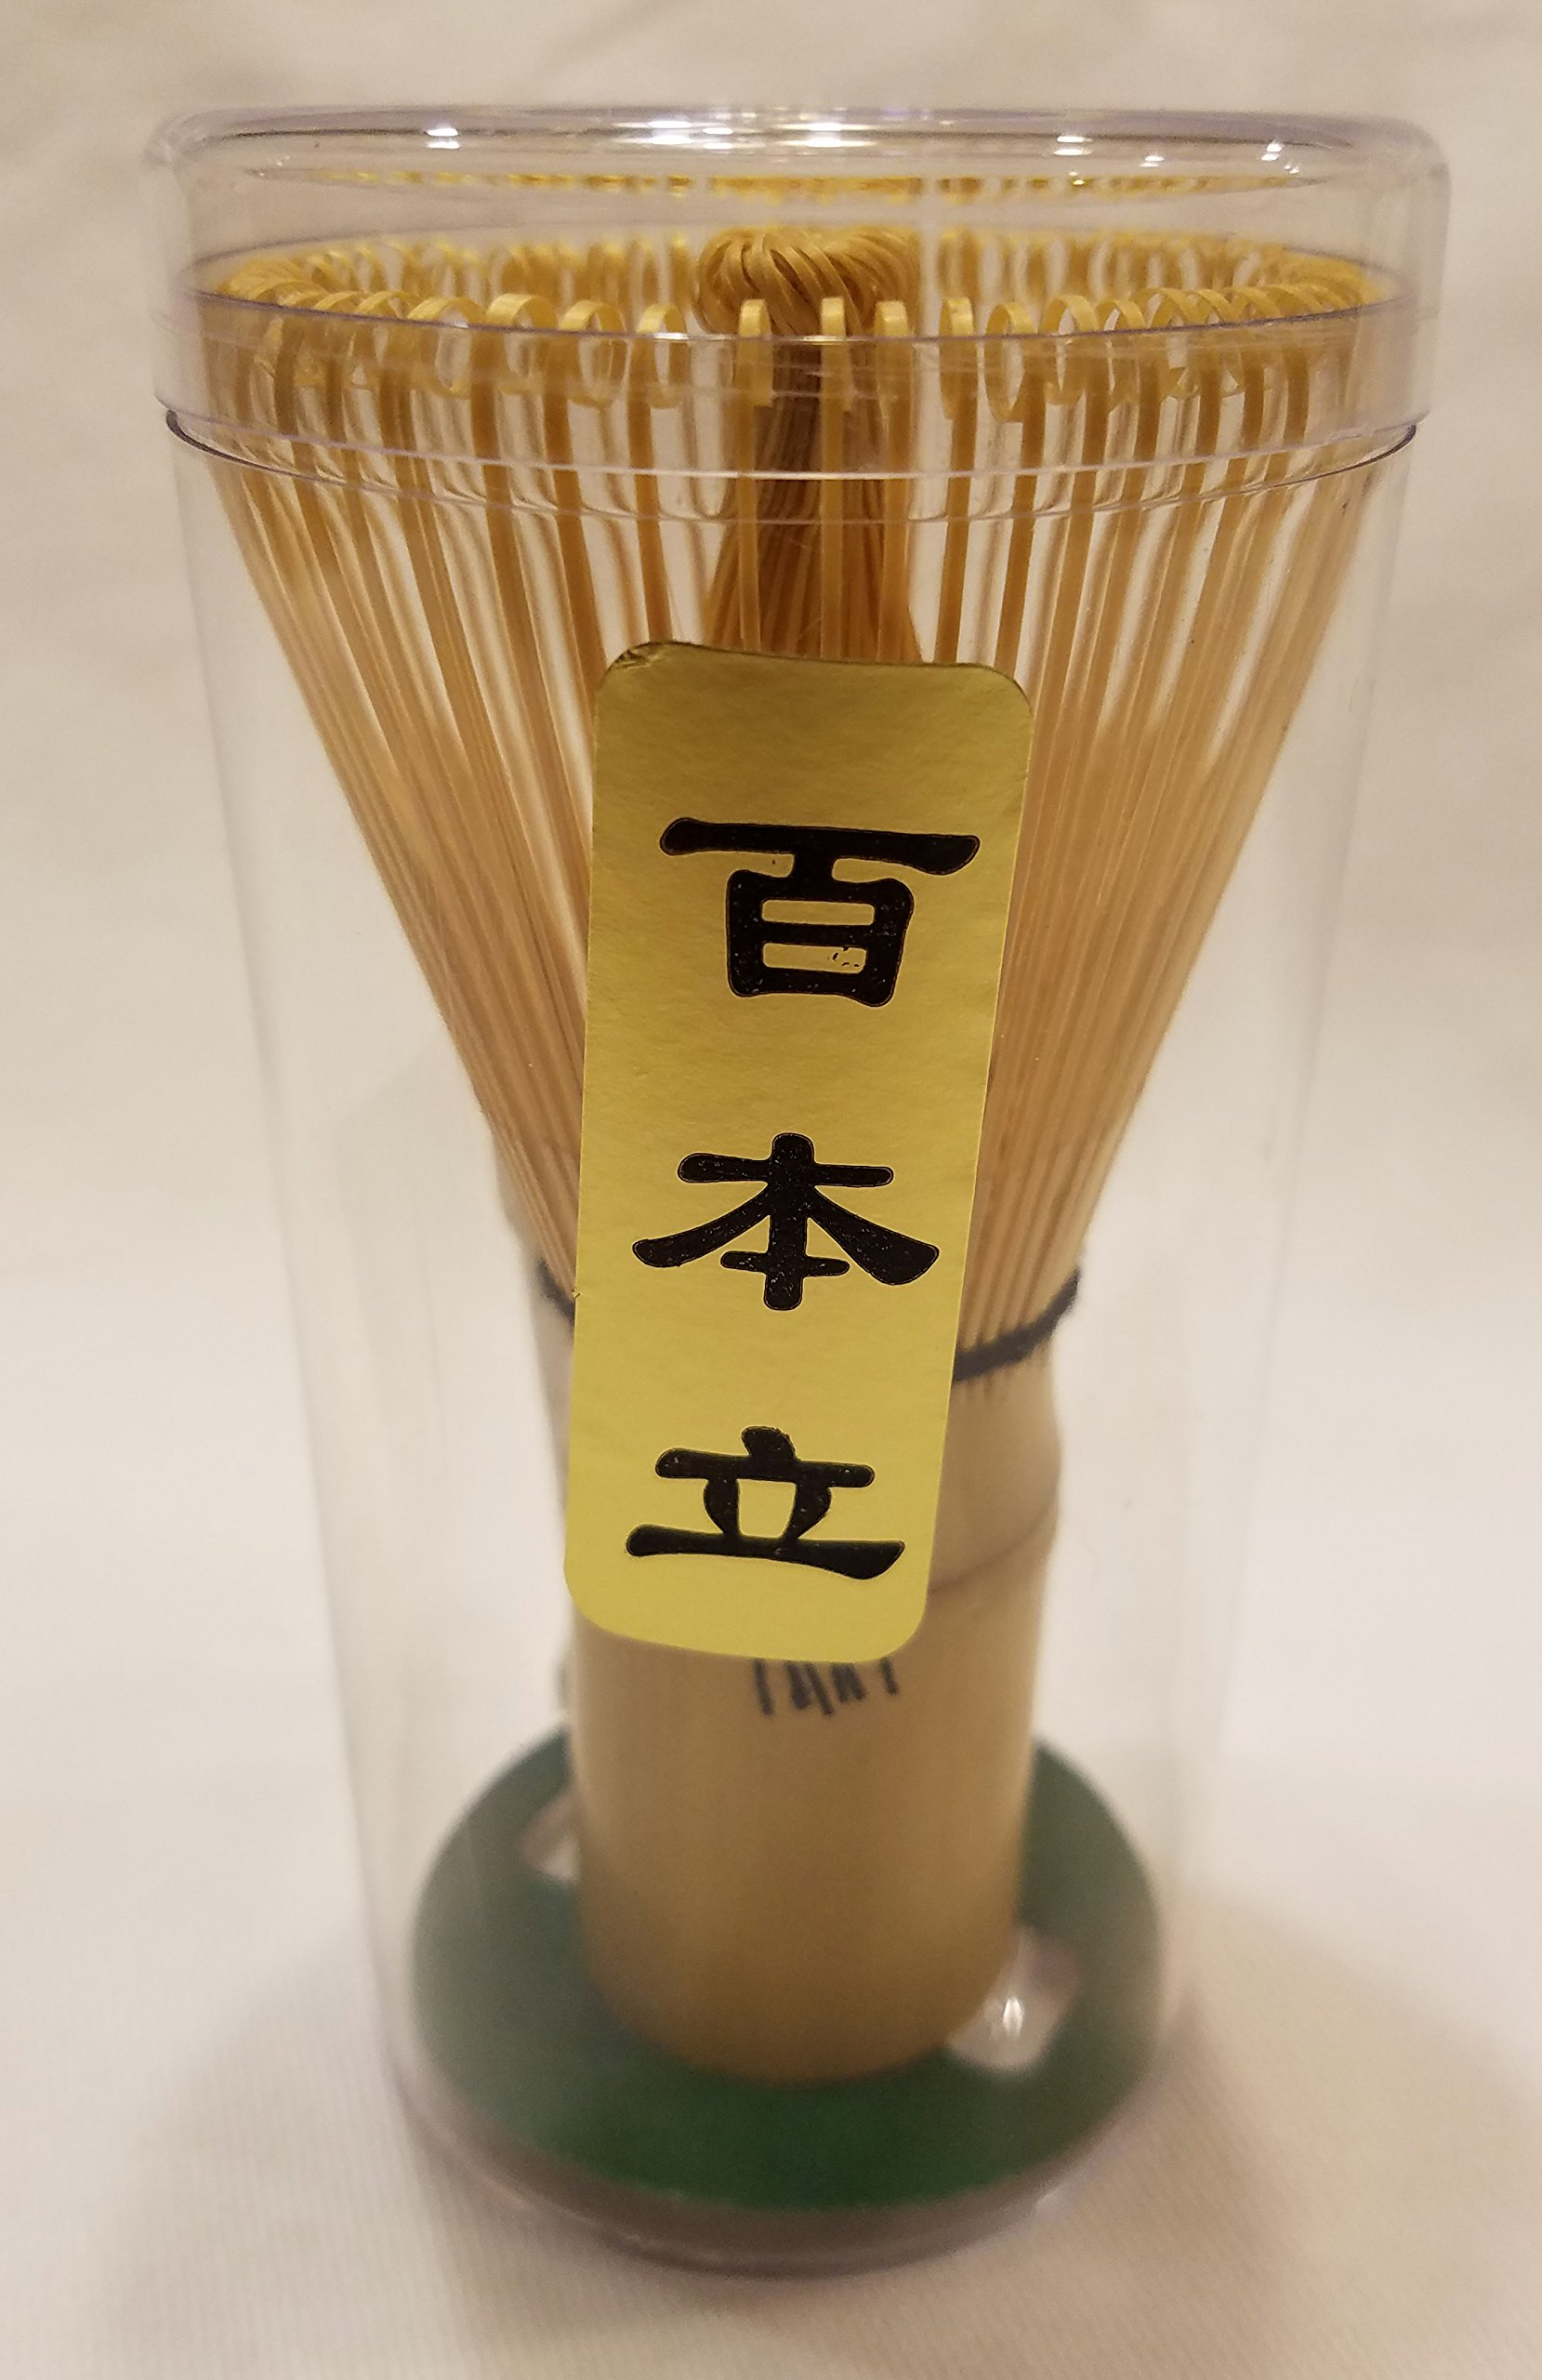 Japanese Matcha Tea Whisk Traditional (Chasen 100 String Whisk) For Preparing intricate Foam to Matcha Tea